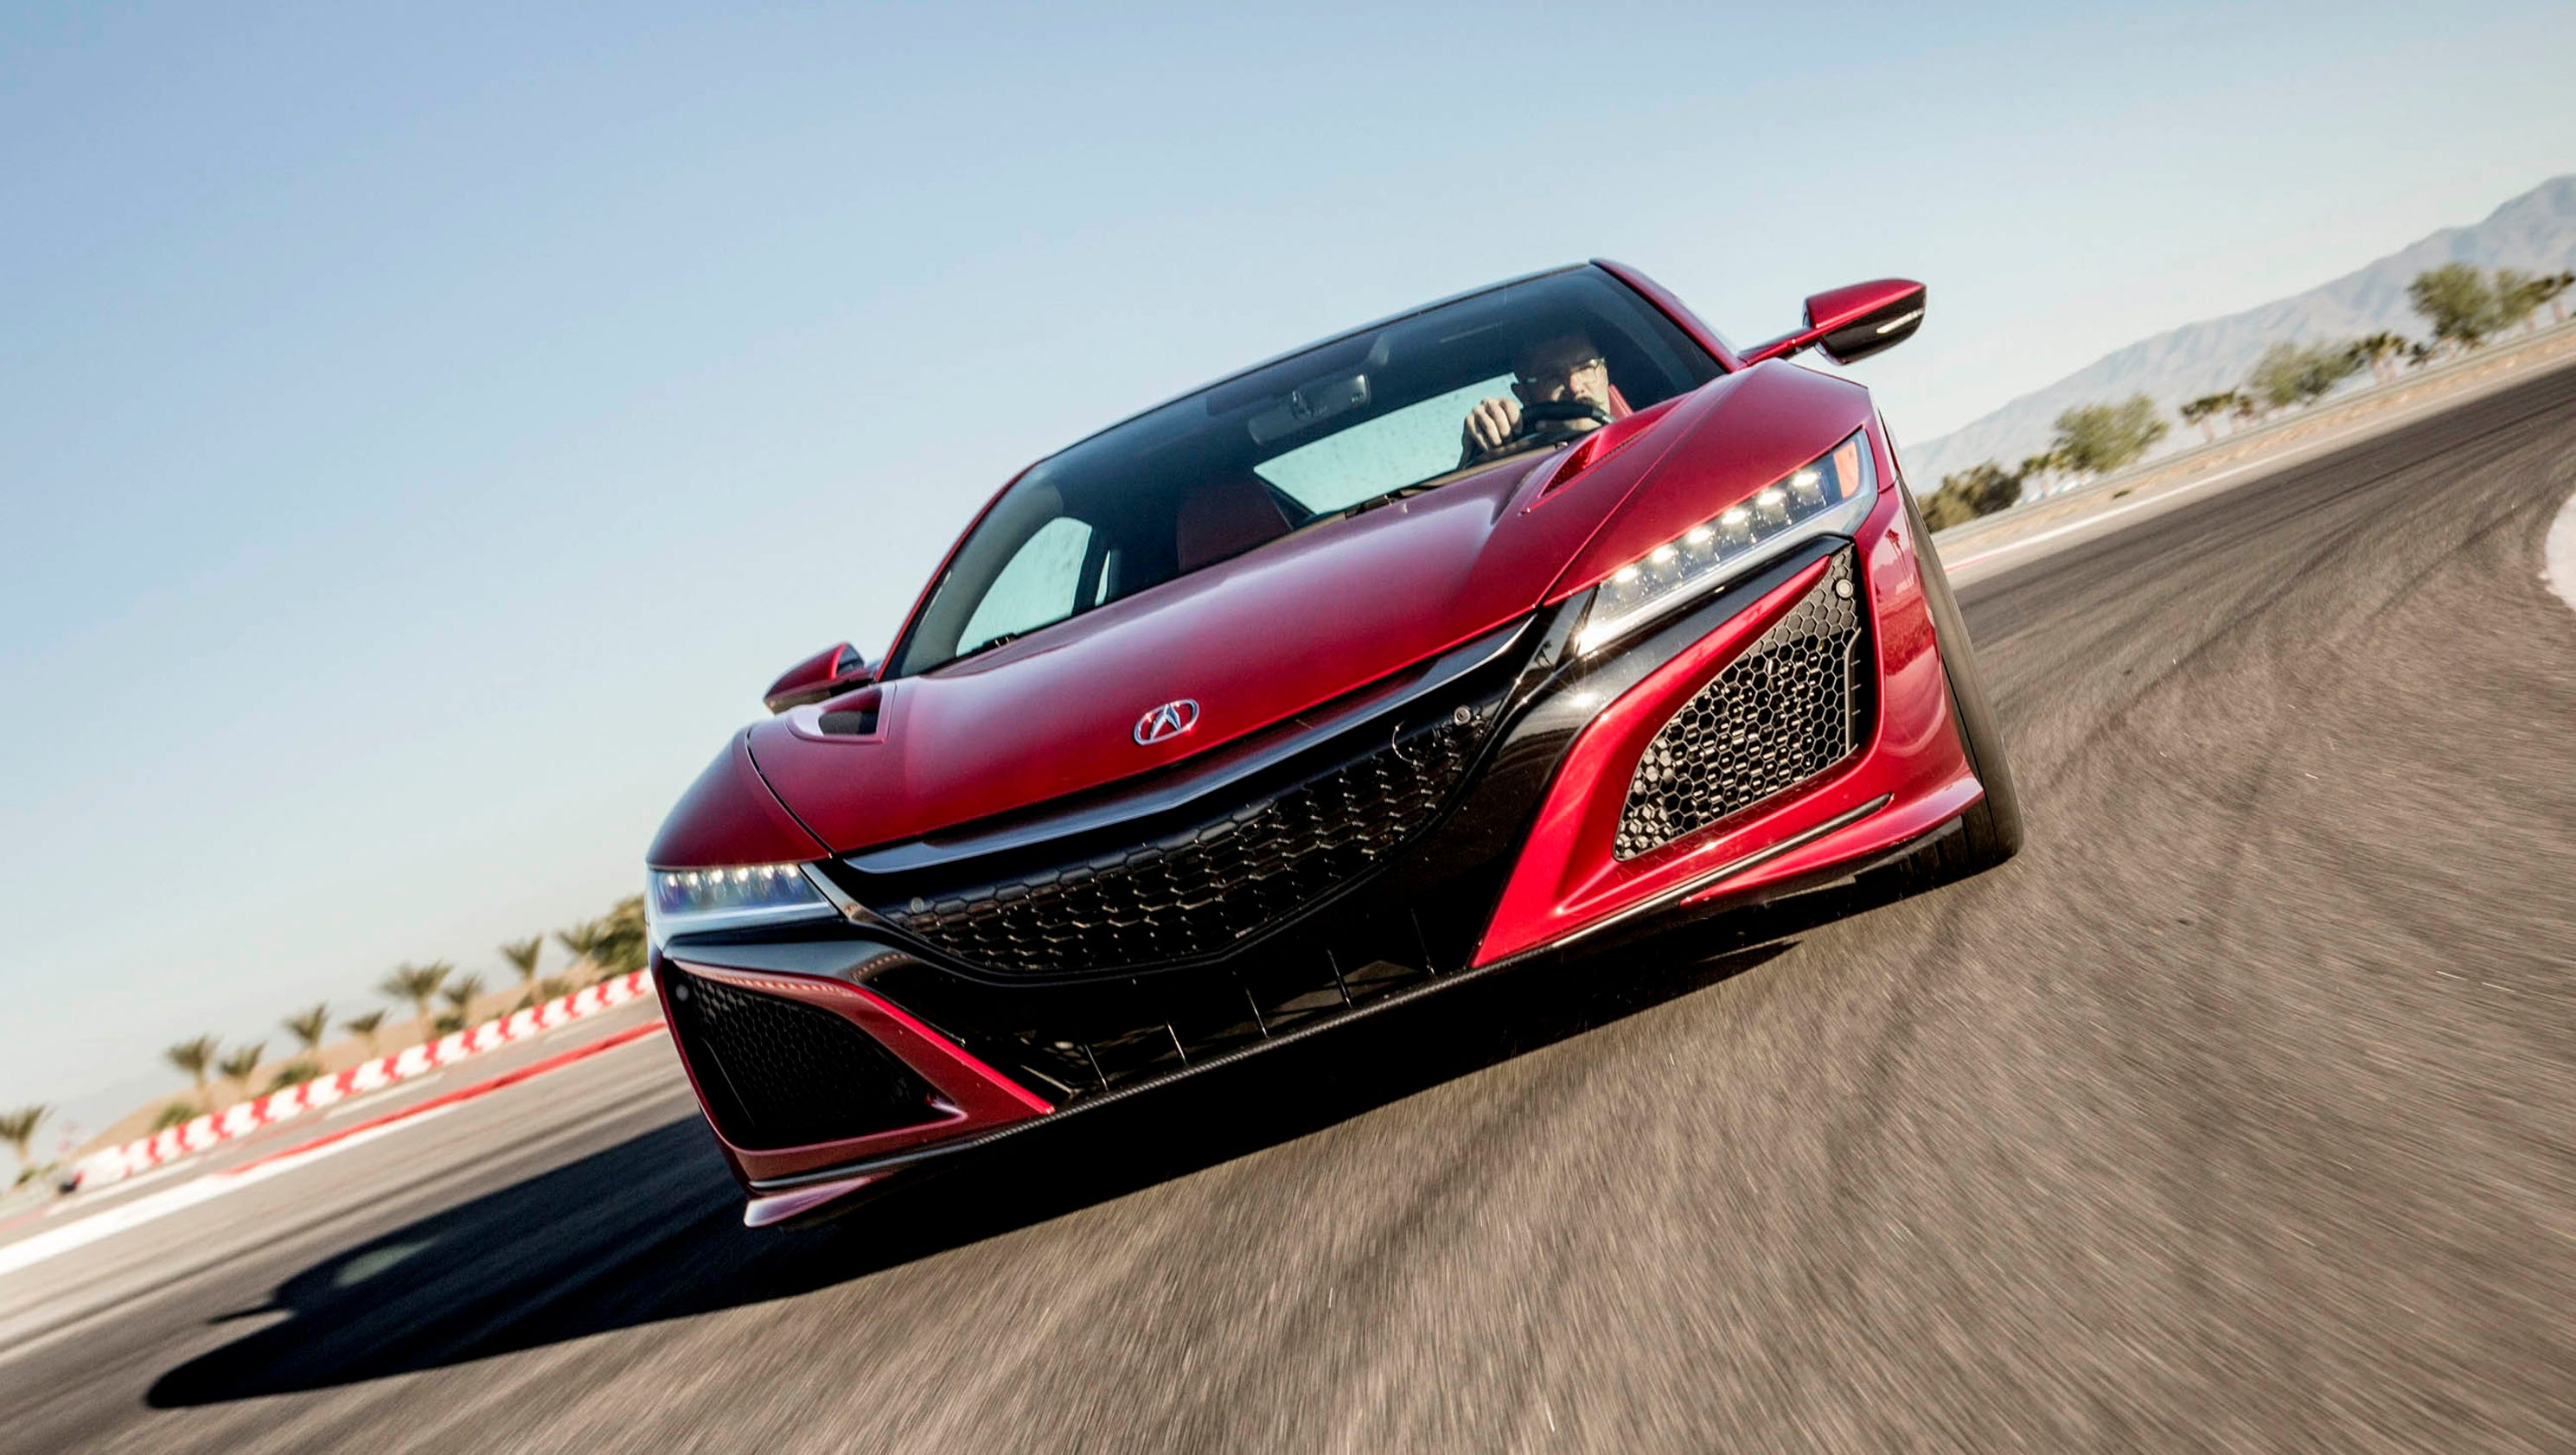 is consumer video friendly the sports first supercar cars review acura drive nsx reports hybrid vs